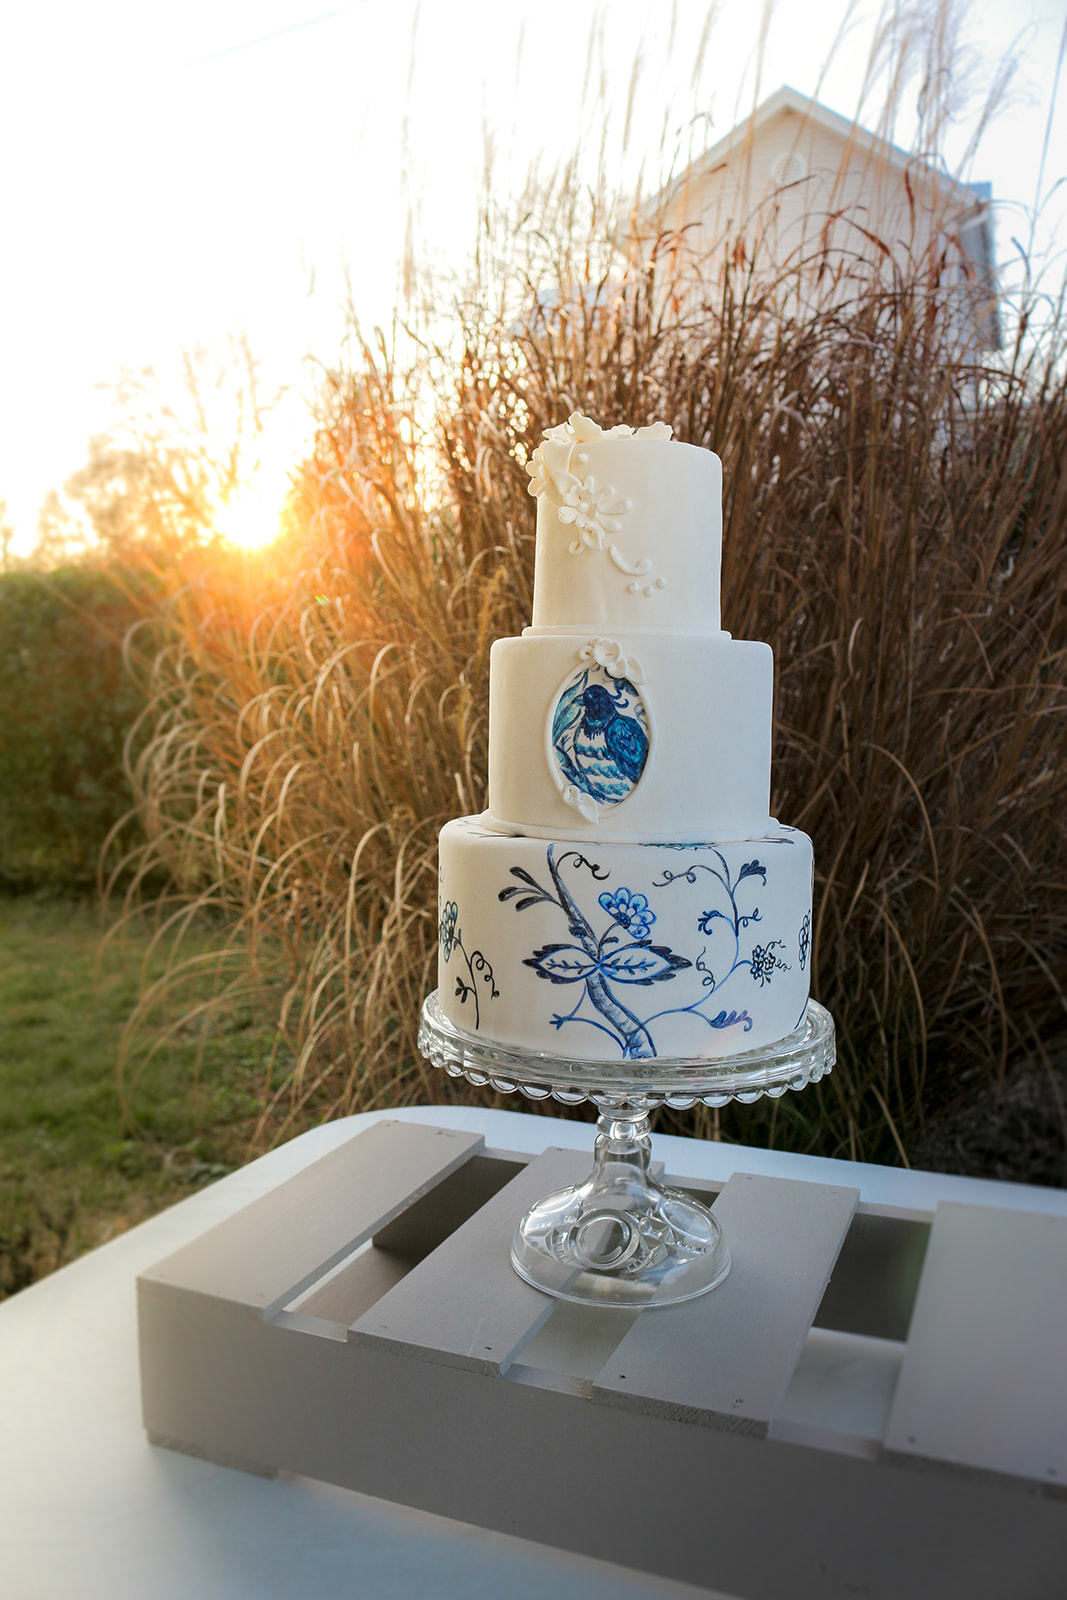 Artistic wedding cake with hand painted blue flowersa